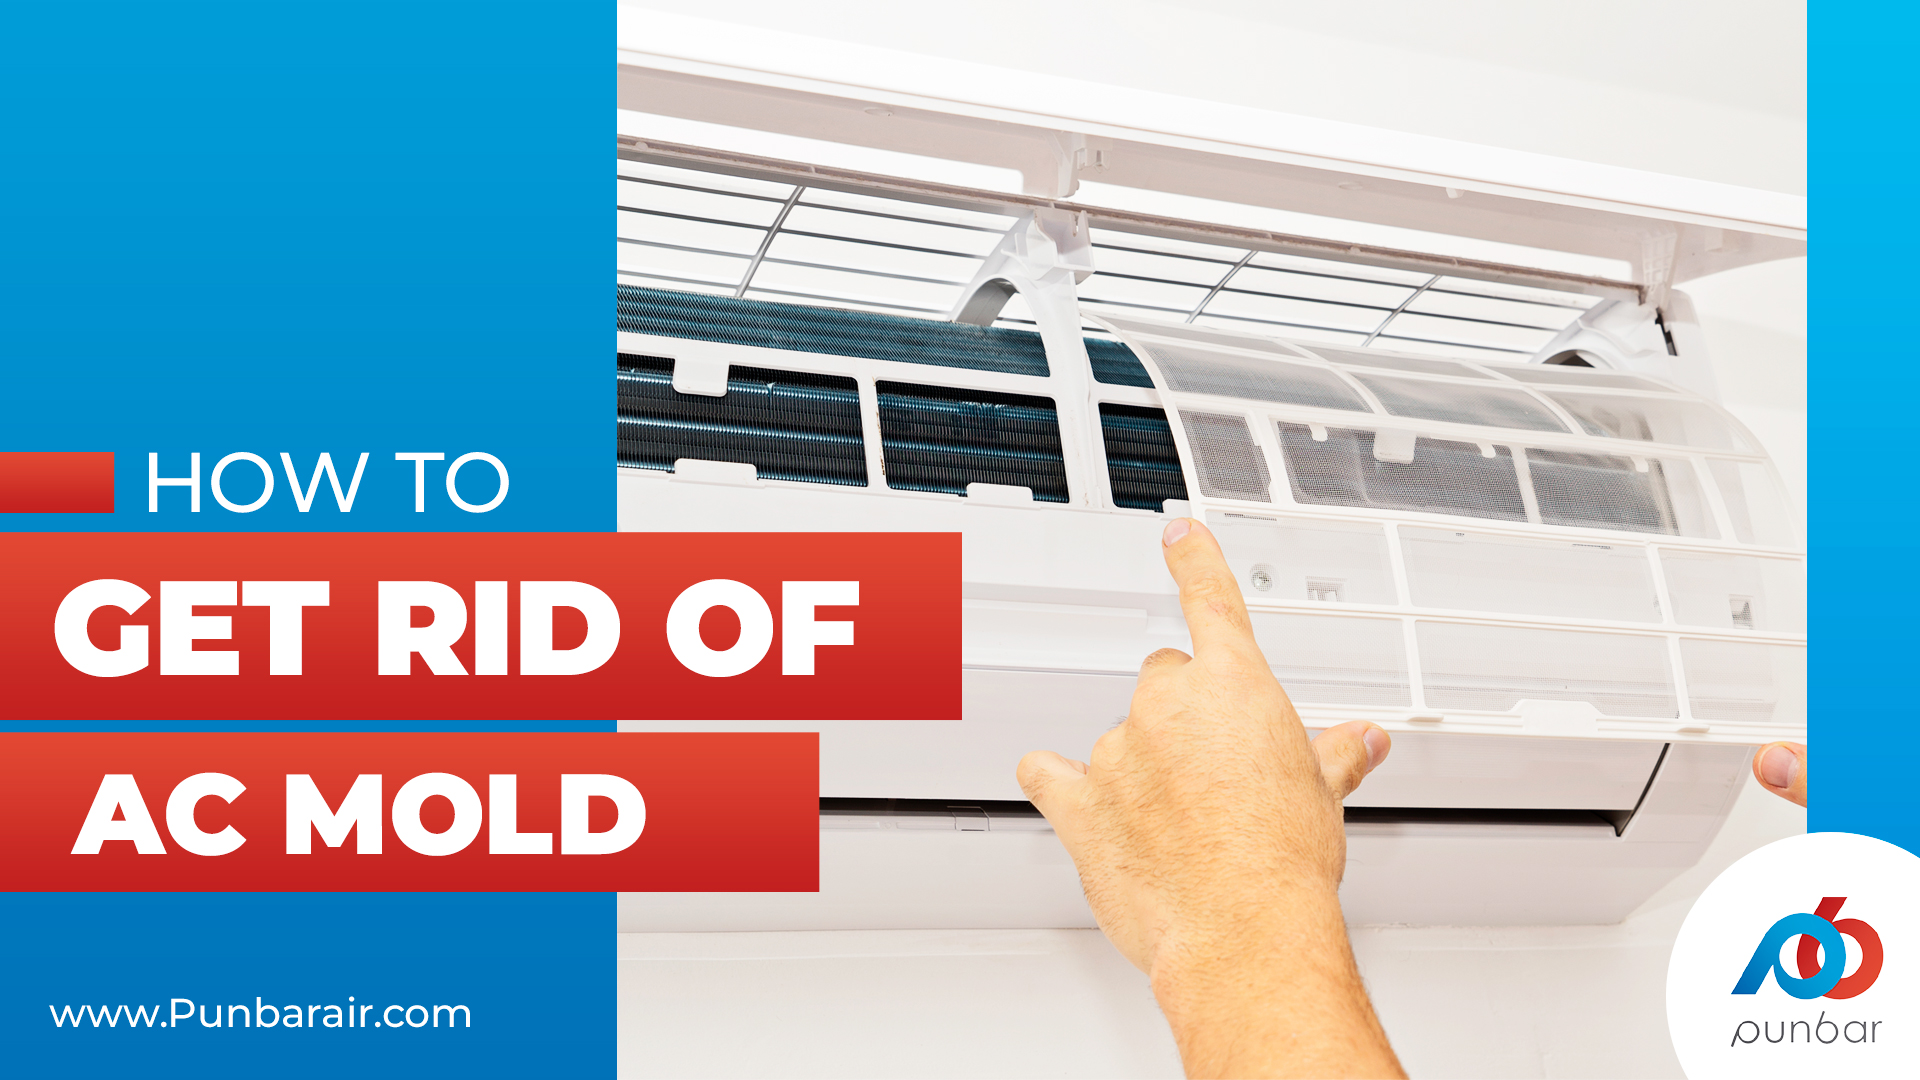 HOW TO GET RID OF AC MOLD